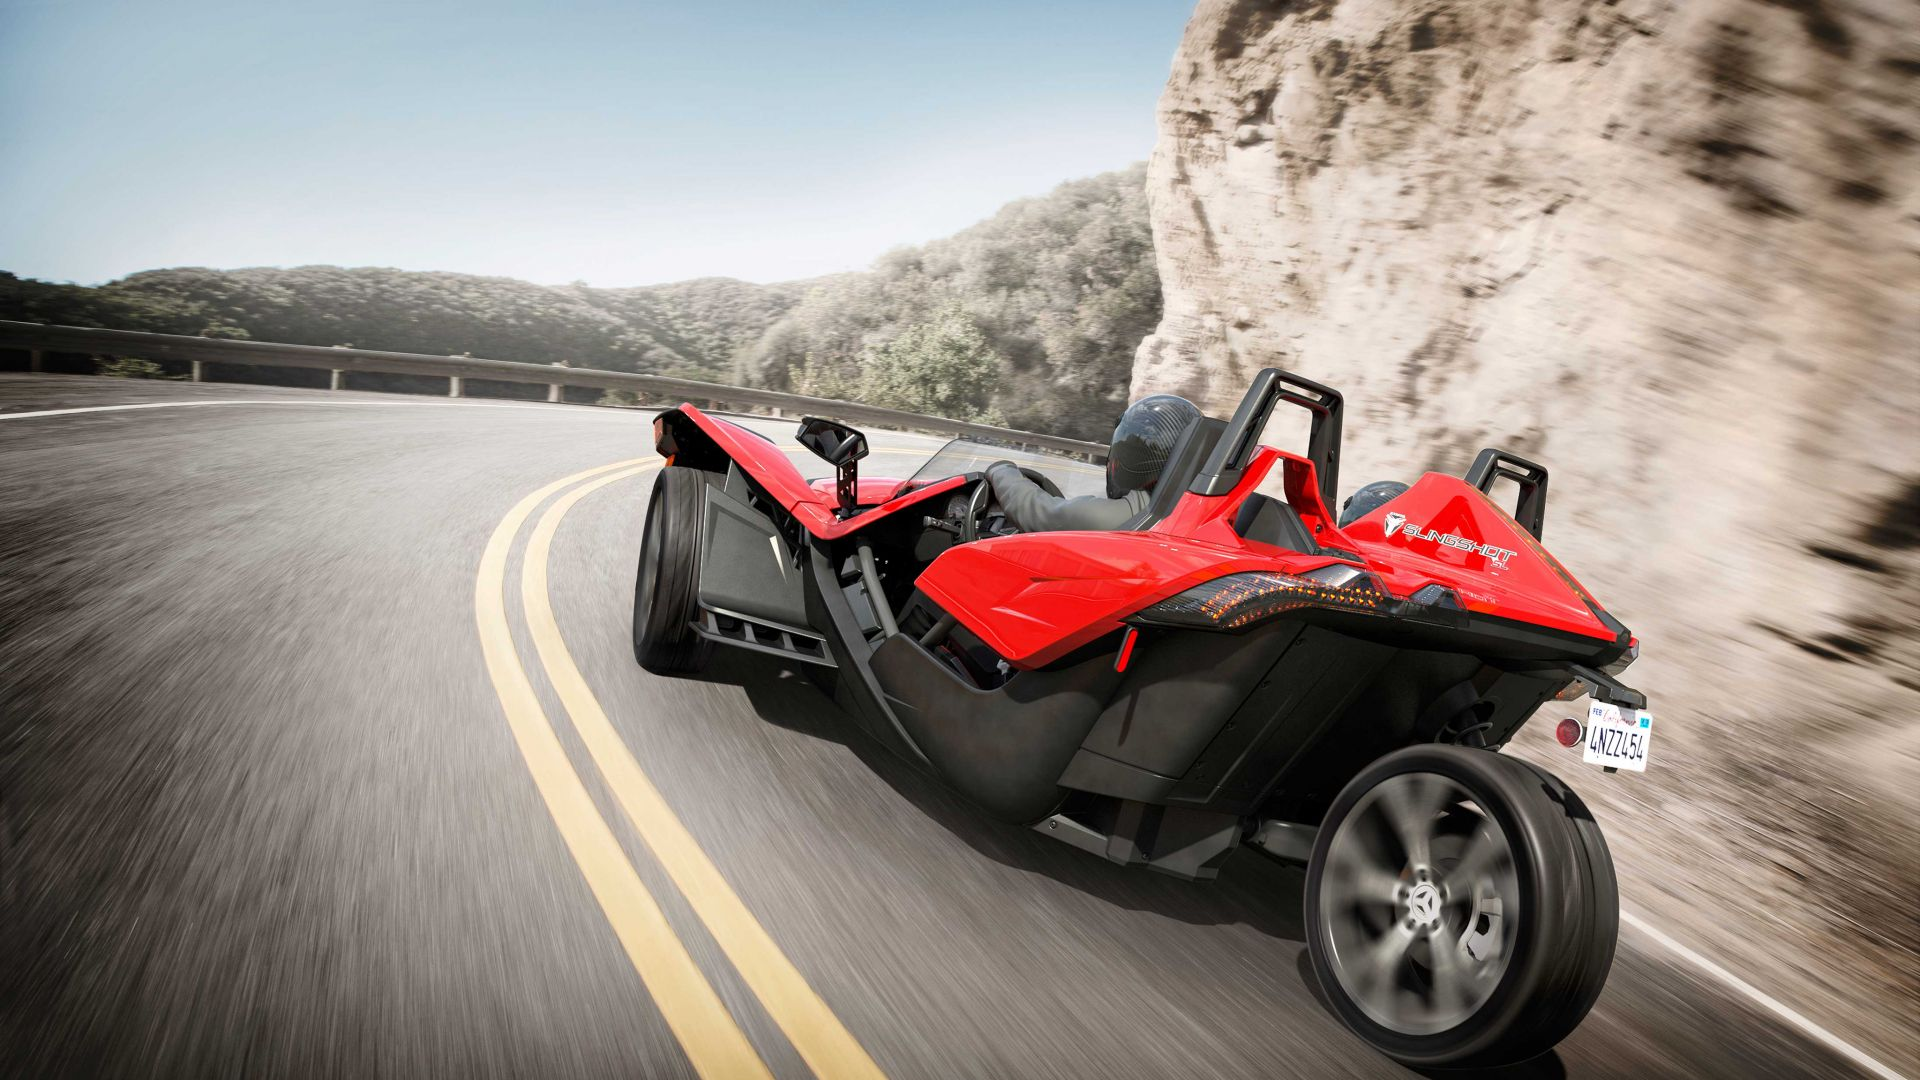 Polaris Slingshot, limited edition, red (horizontal)